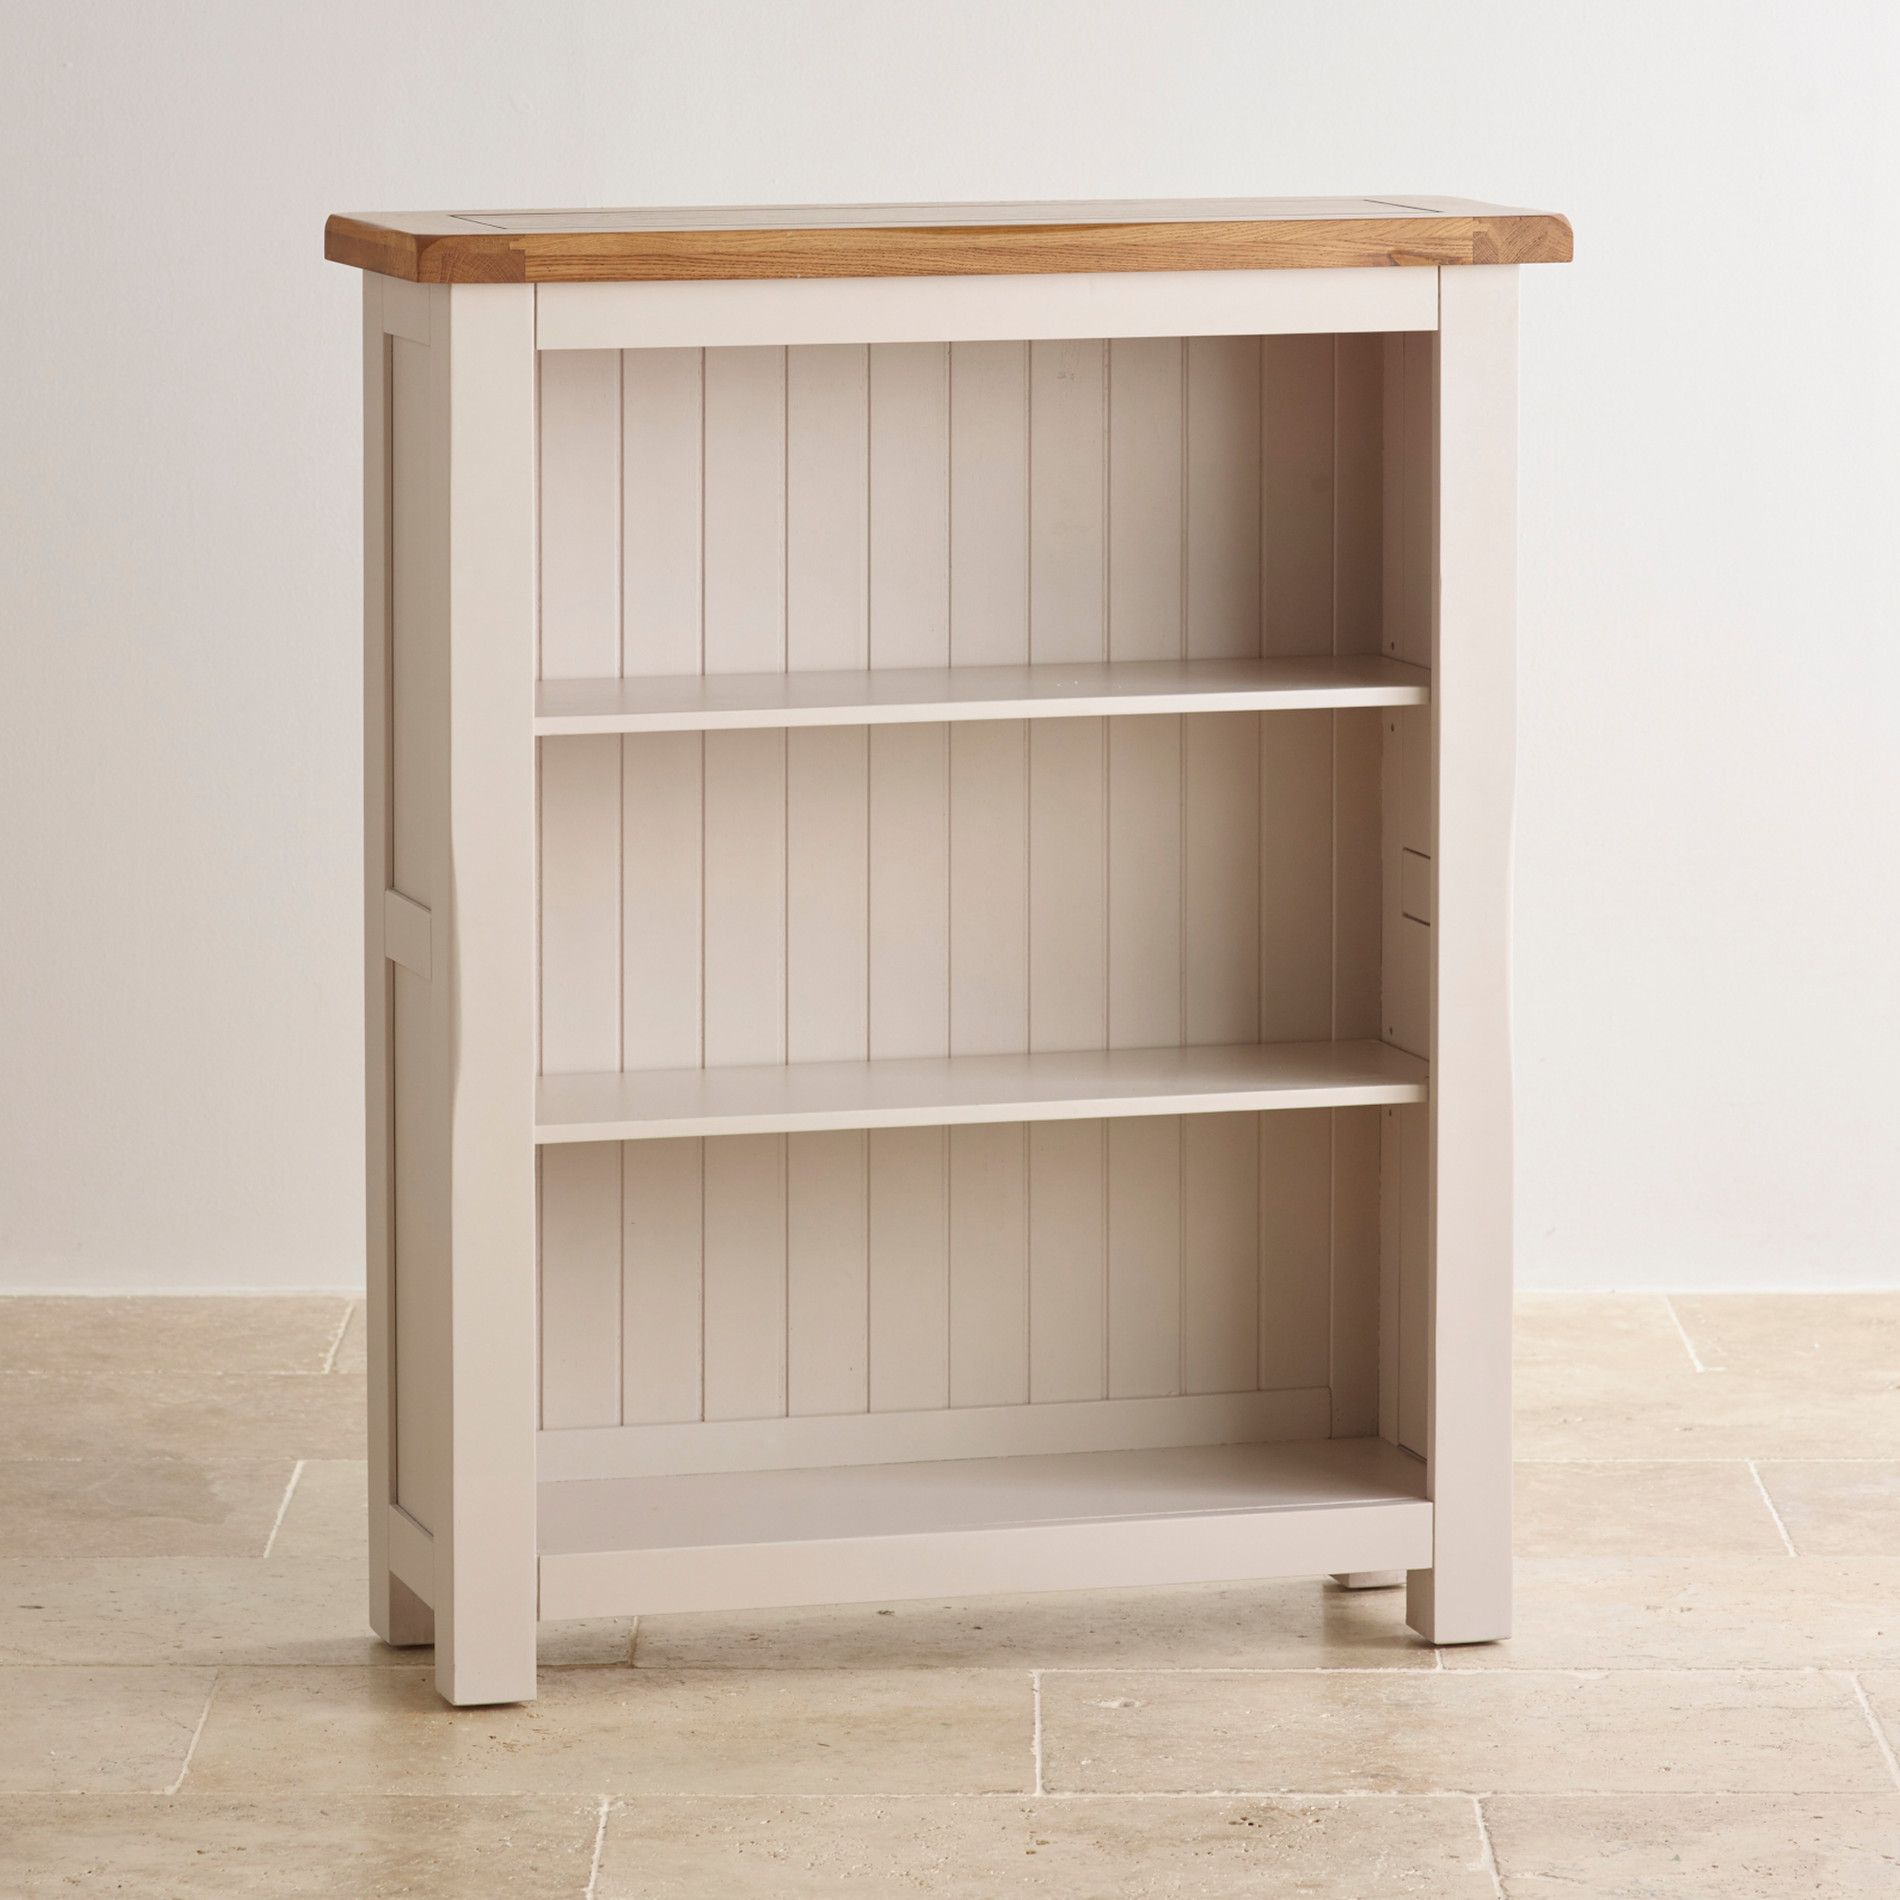 H4home Oak Small Bookcase With 3 Shelves Solid Wood Rustic